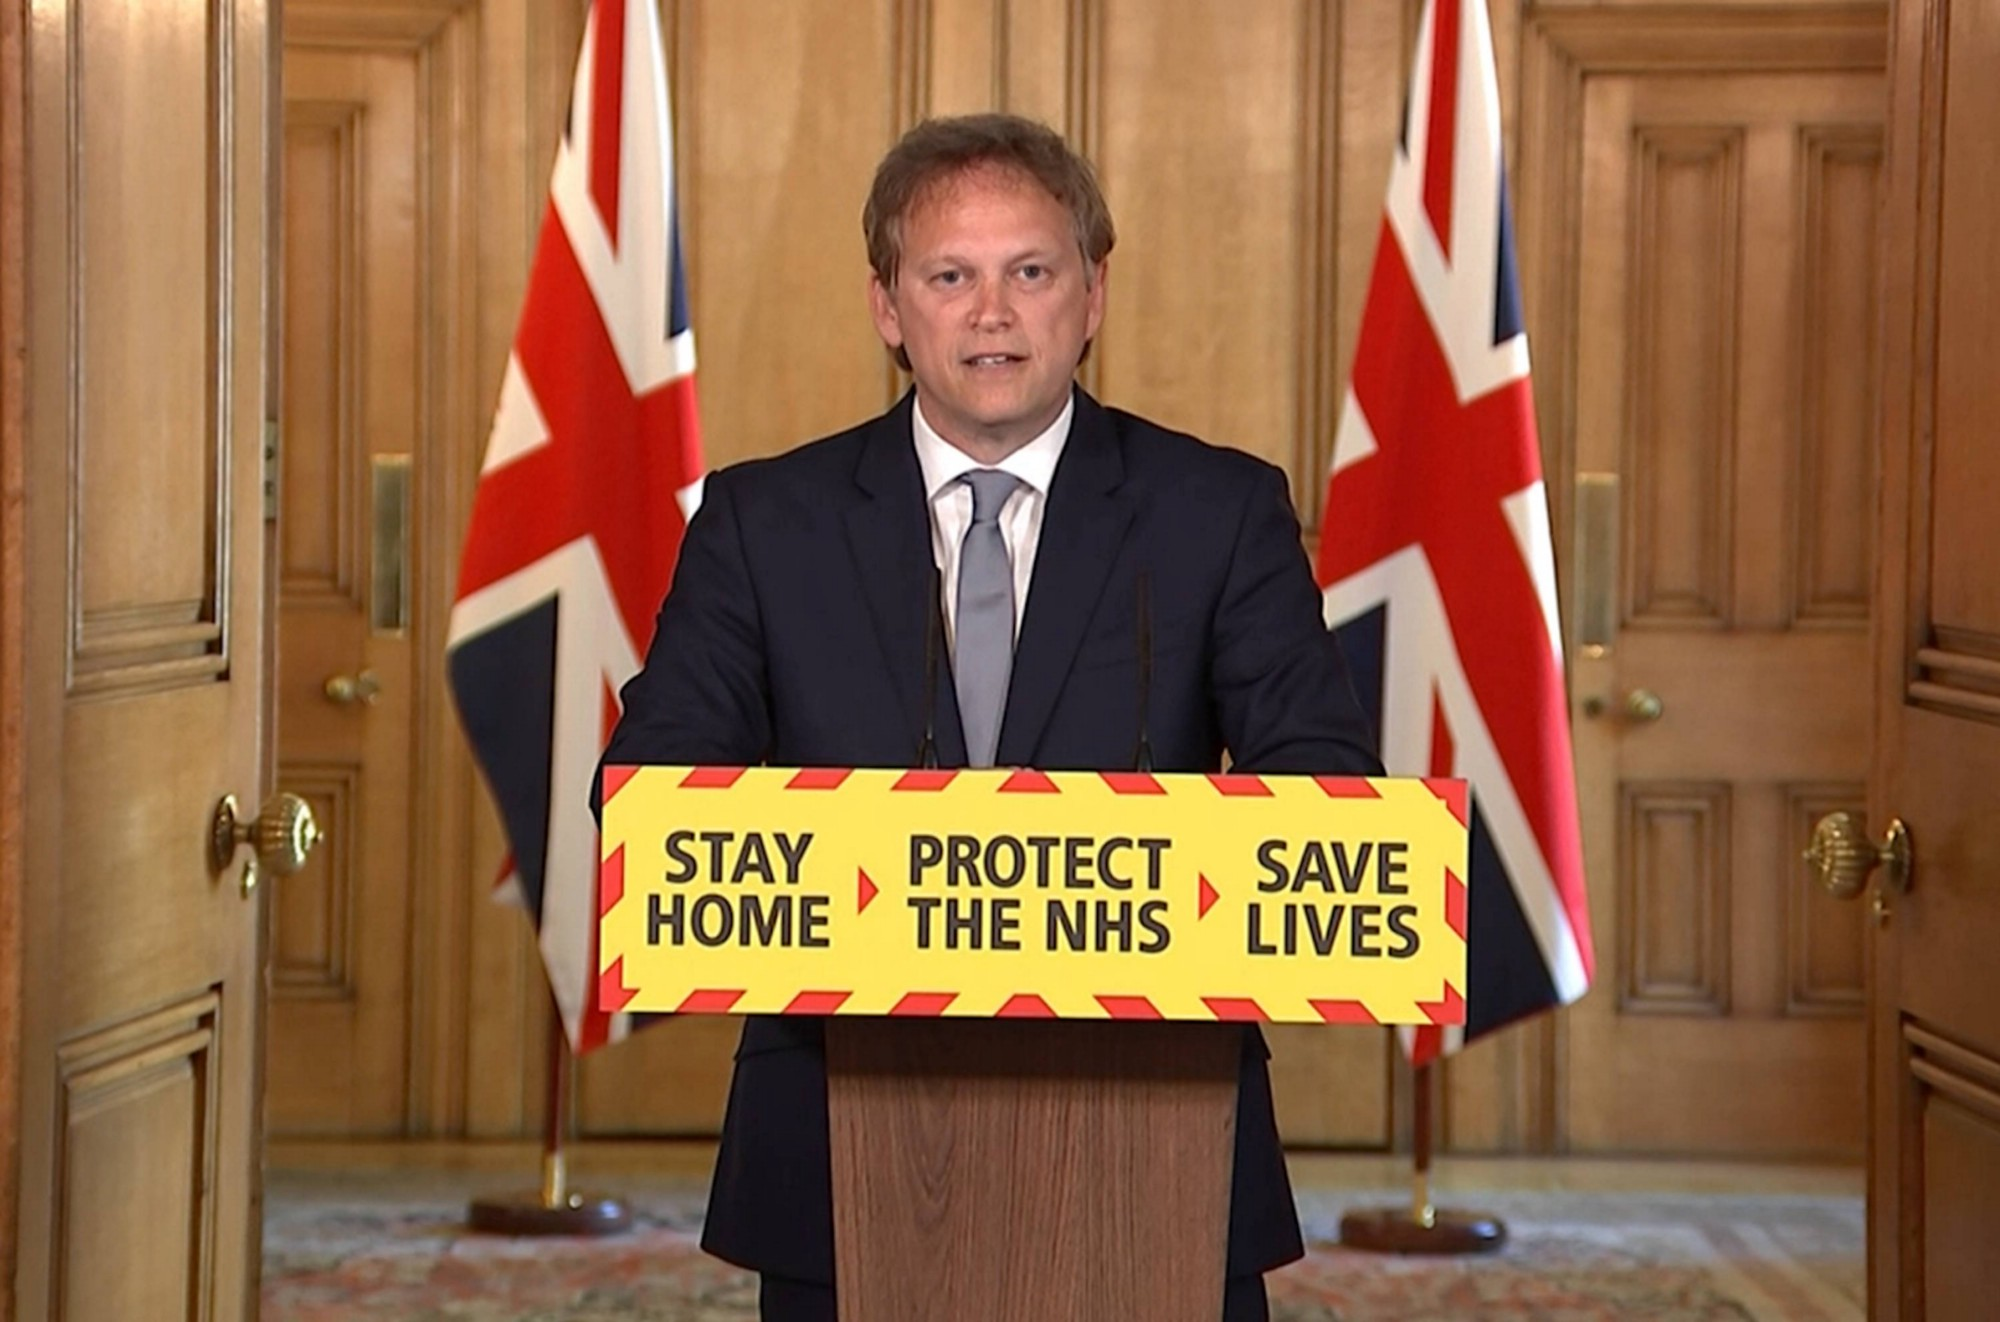 UK Transport Secretary Grant Shapps presents at the №10 lectern for the daily Downing Street briefing.